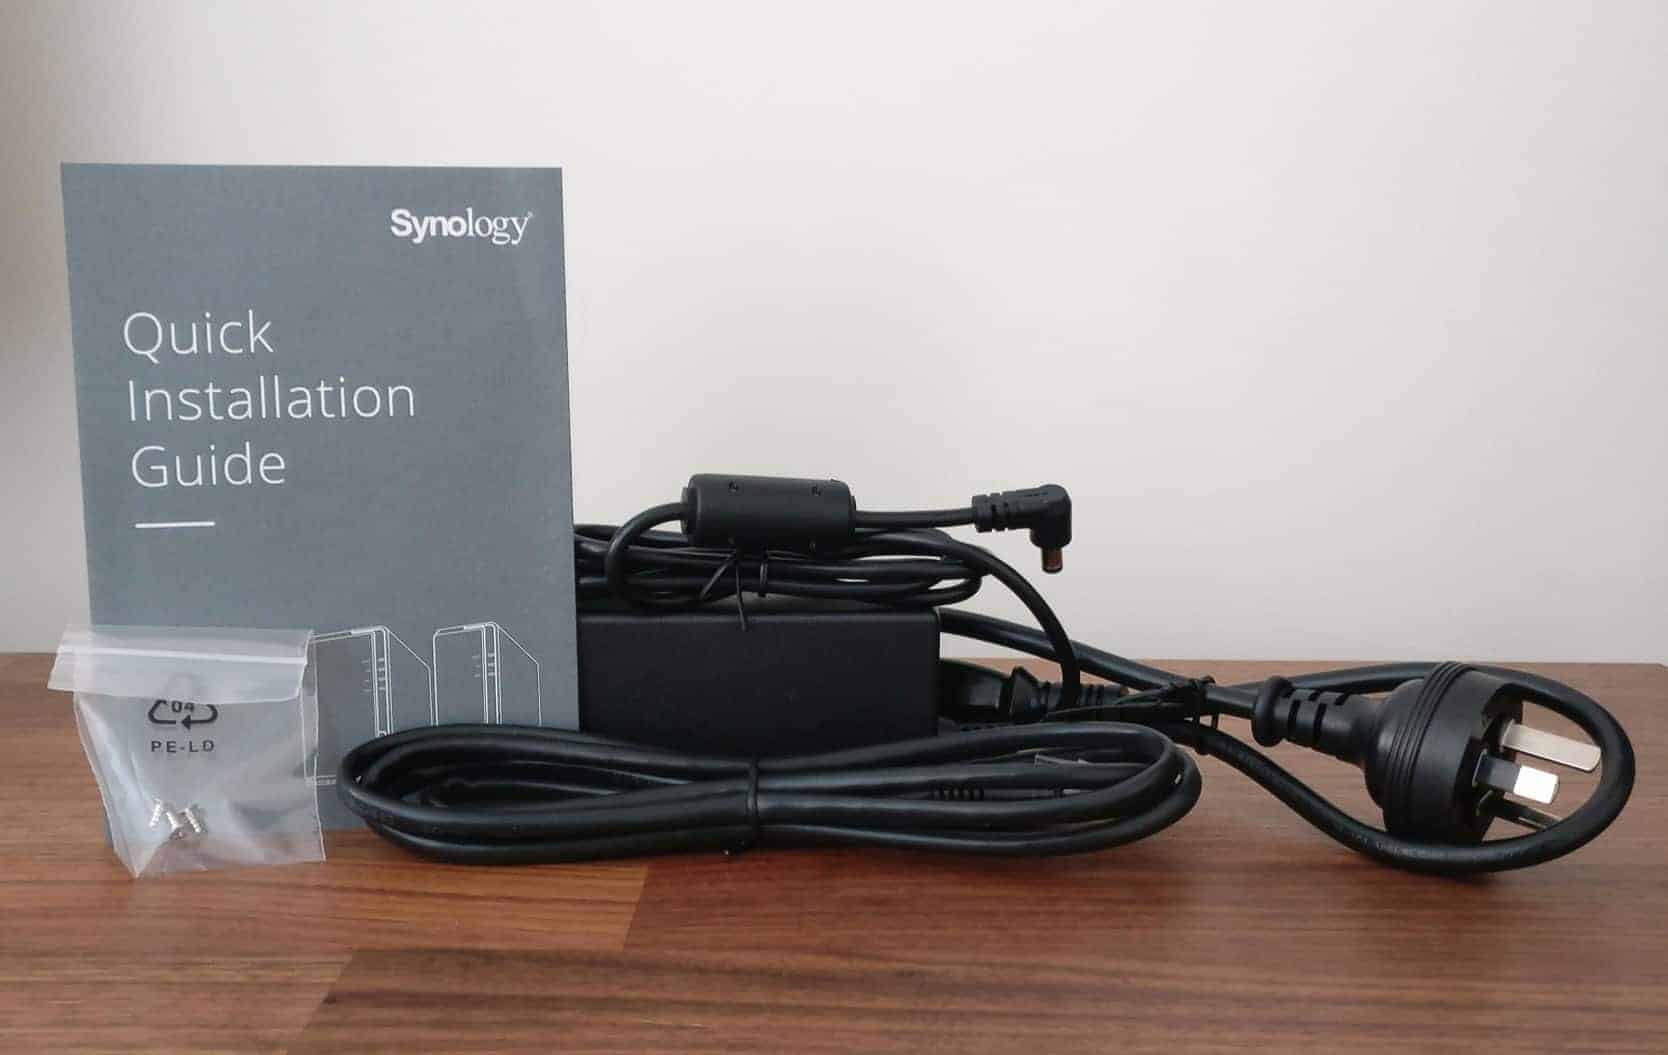 Synology-DS216J-NAS-Photos-21 Synology DS216J 2 Bay NAS Review - The Perfect Backup Solution